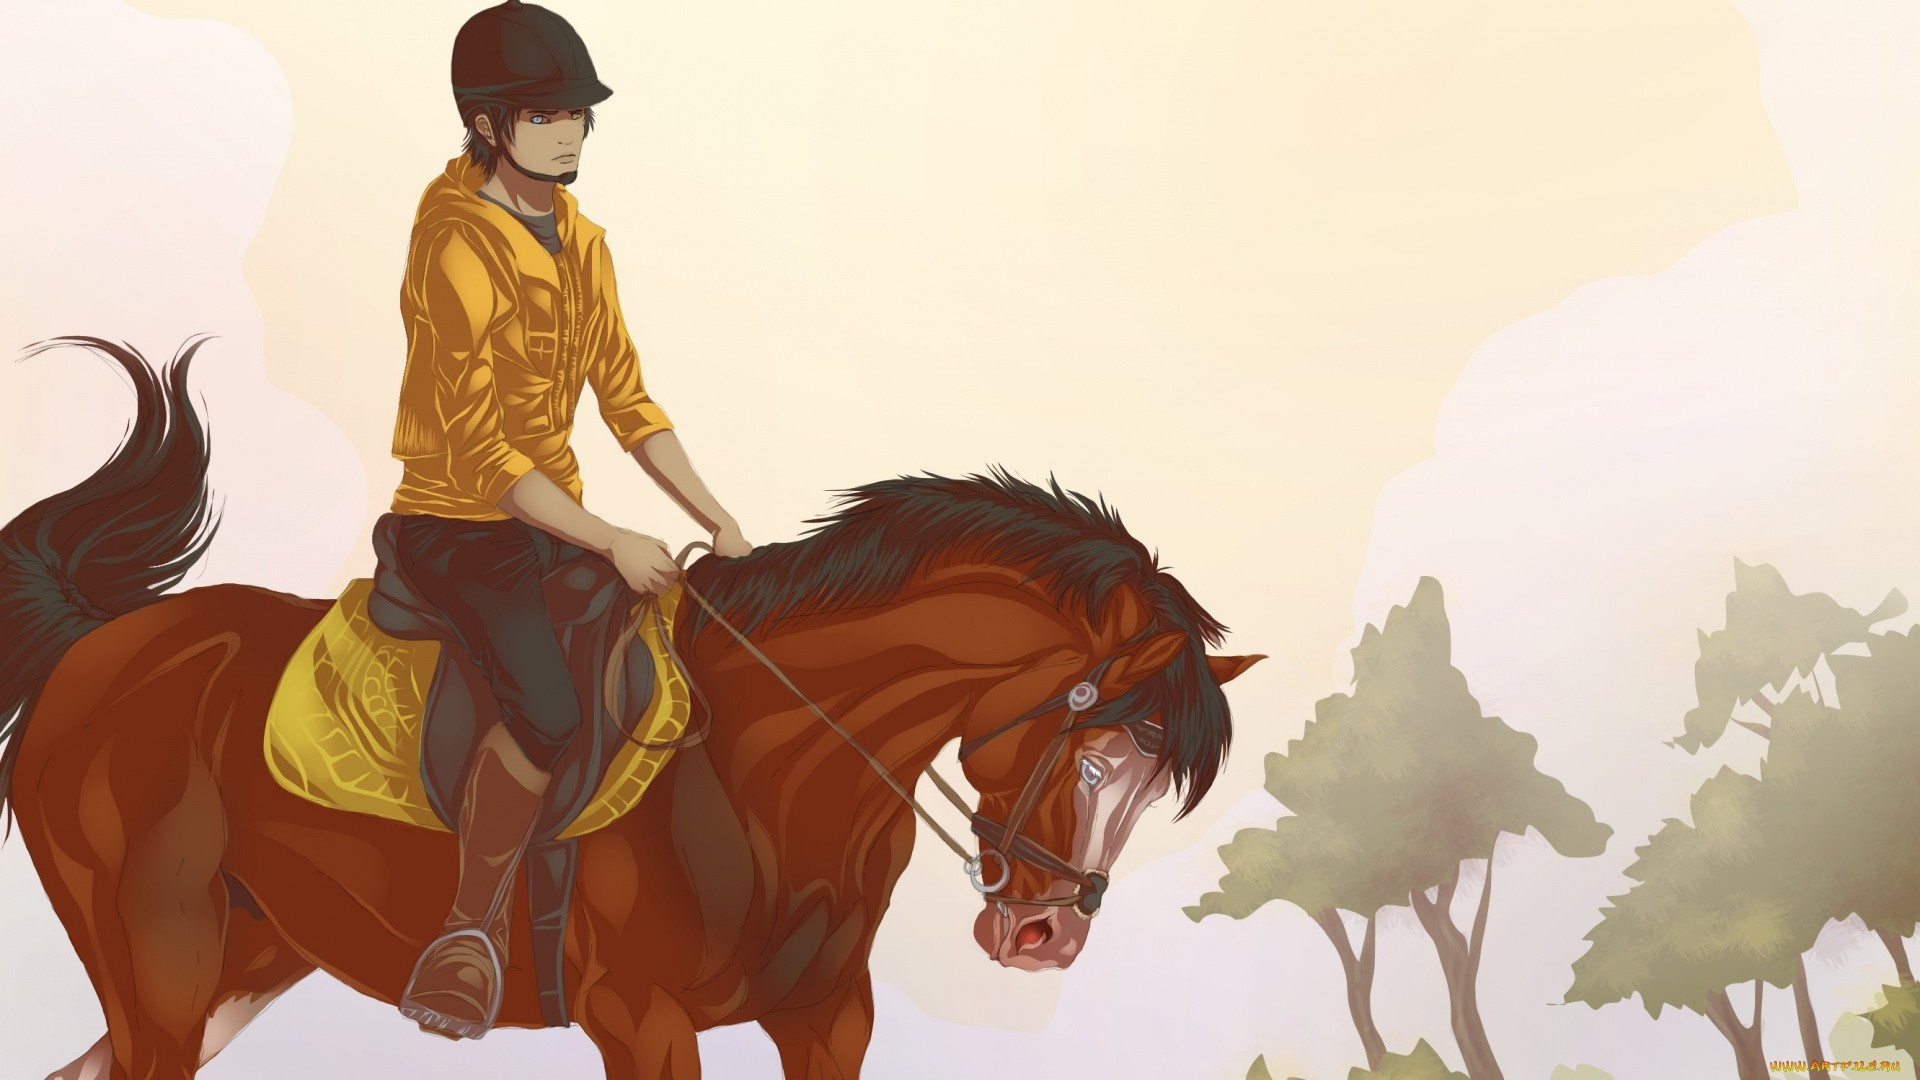 Rider On A Horse Art wallpaper photo hd